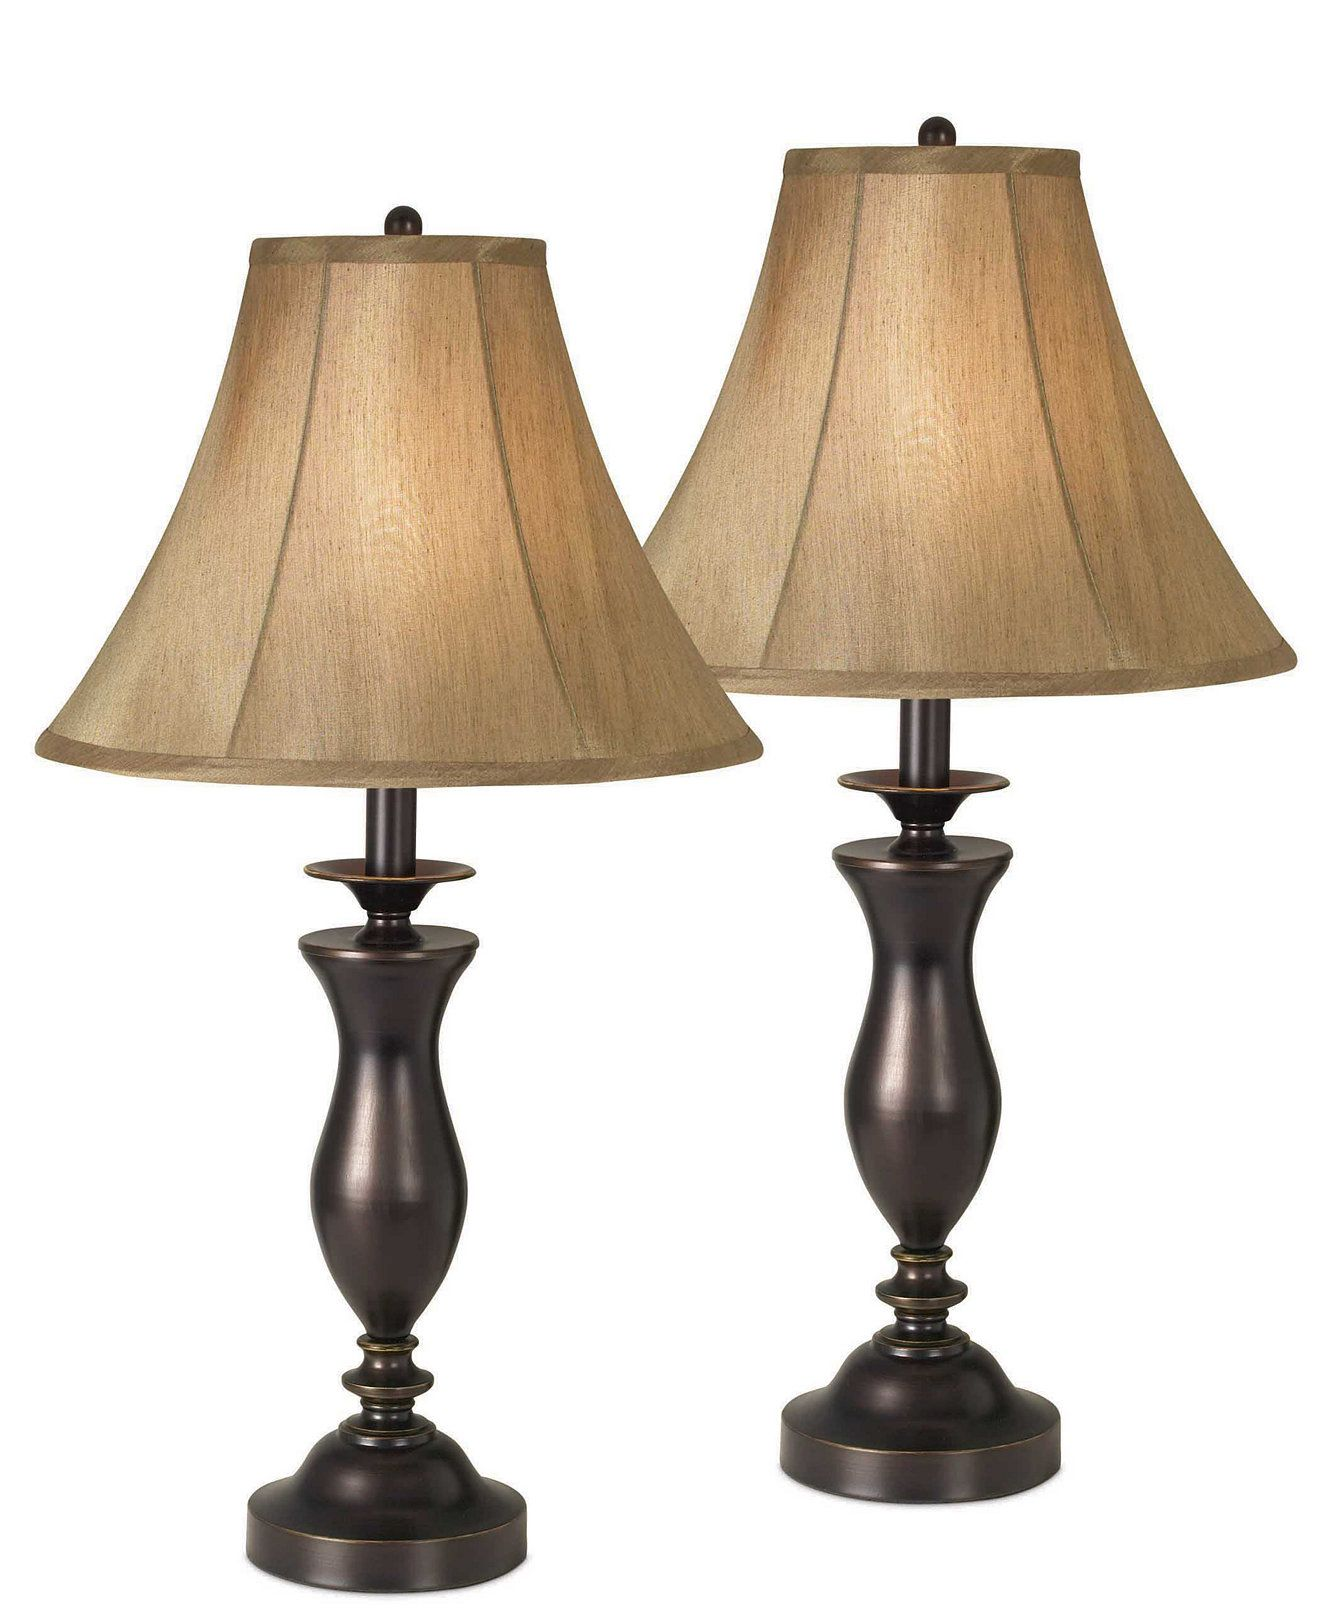 Kathy Ireland Home By Pacific Coast New England Village Set Of 2 Table Lamps Reviews All Lighting Home Decor Macy S Home Goods Decor Home Home Decor